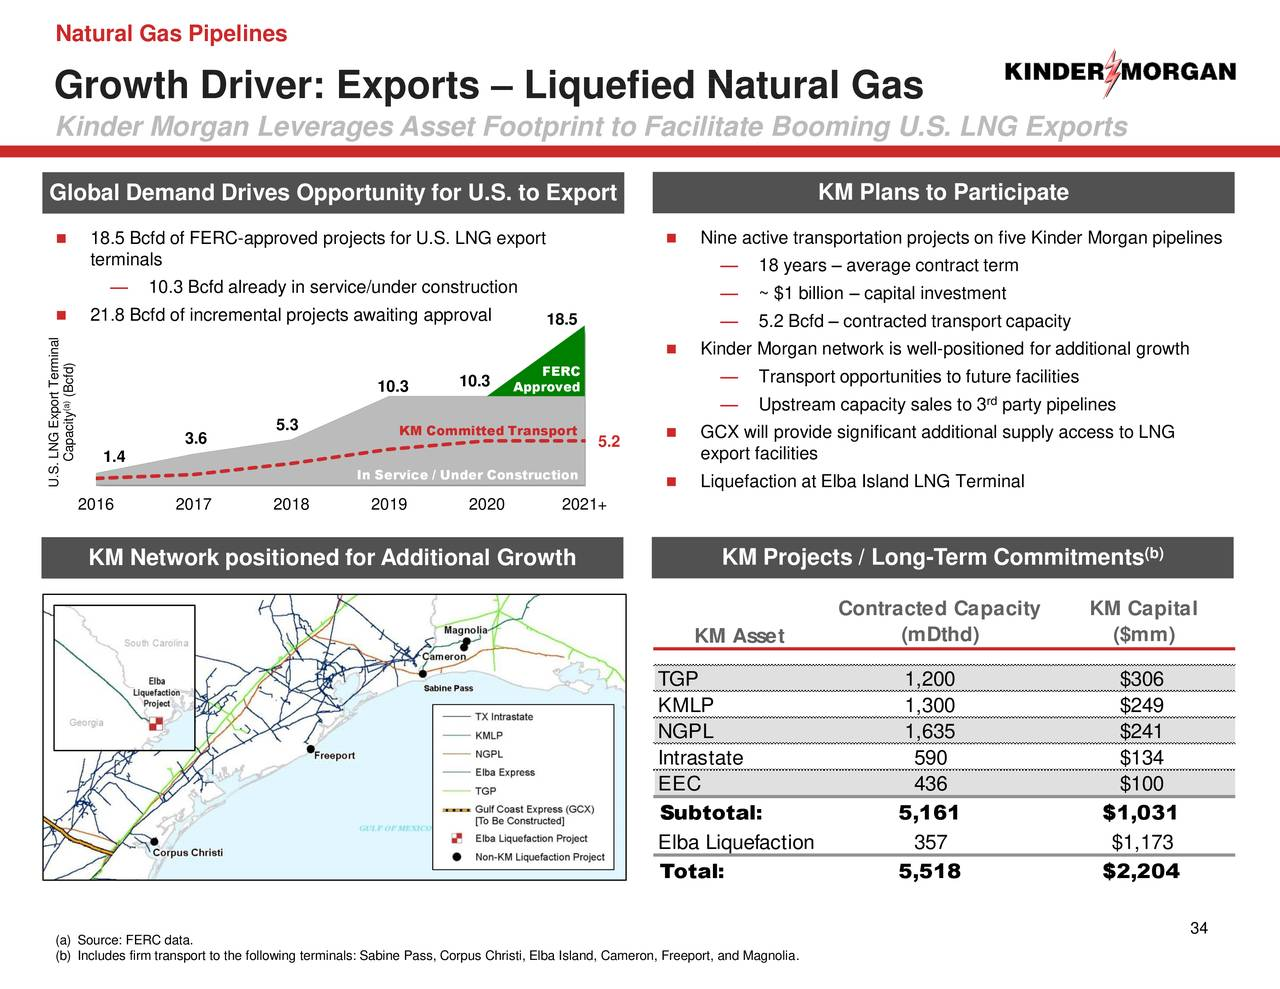 Natural Gas Pipeline Kml